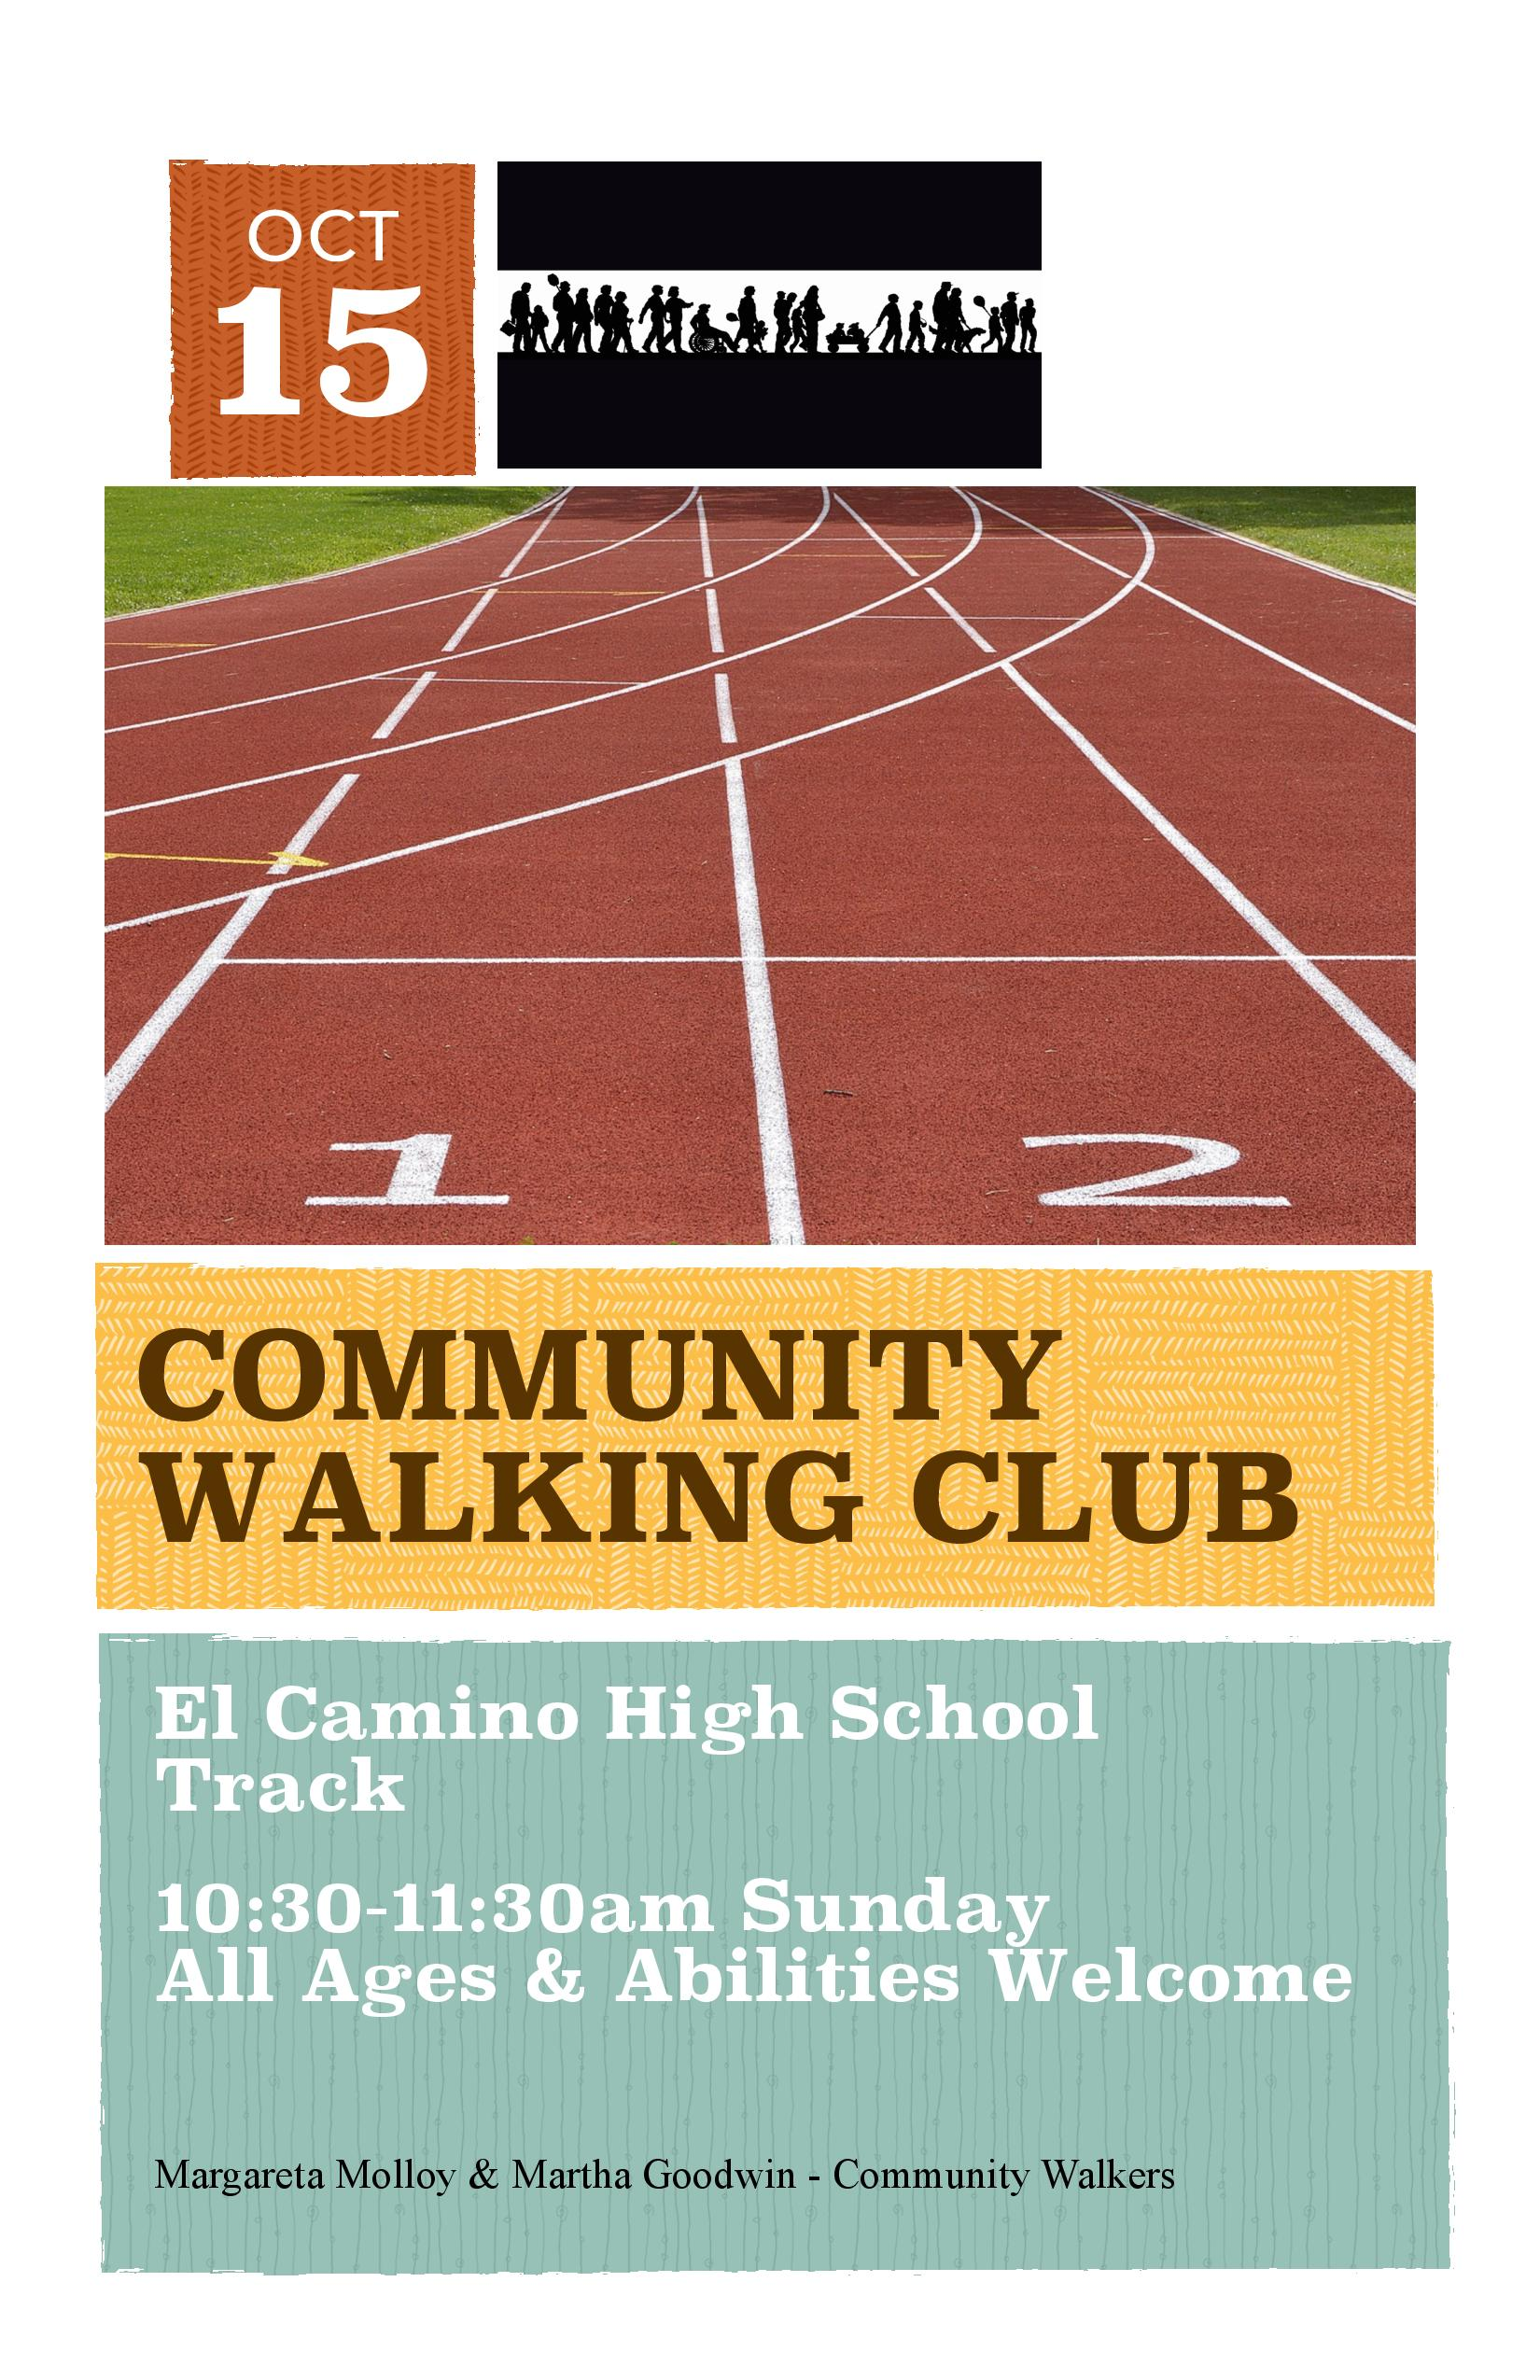 Community Walking Group to Meet at ECH Track Sunday Oct 15 10:30-11:30am